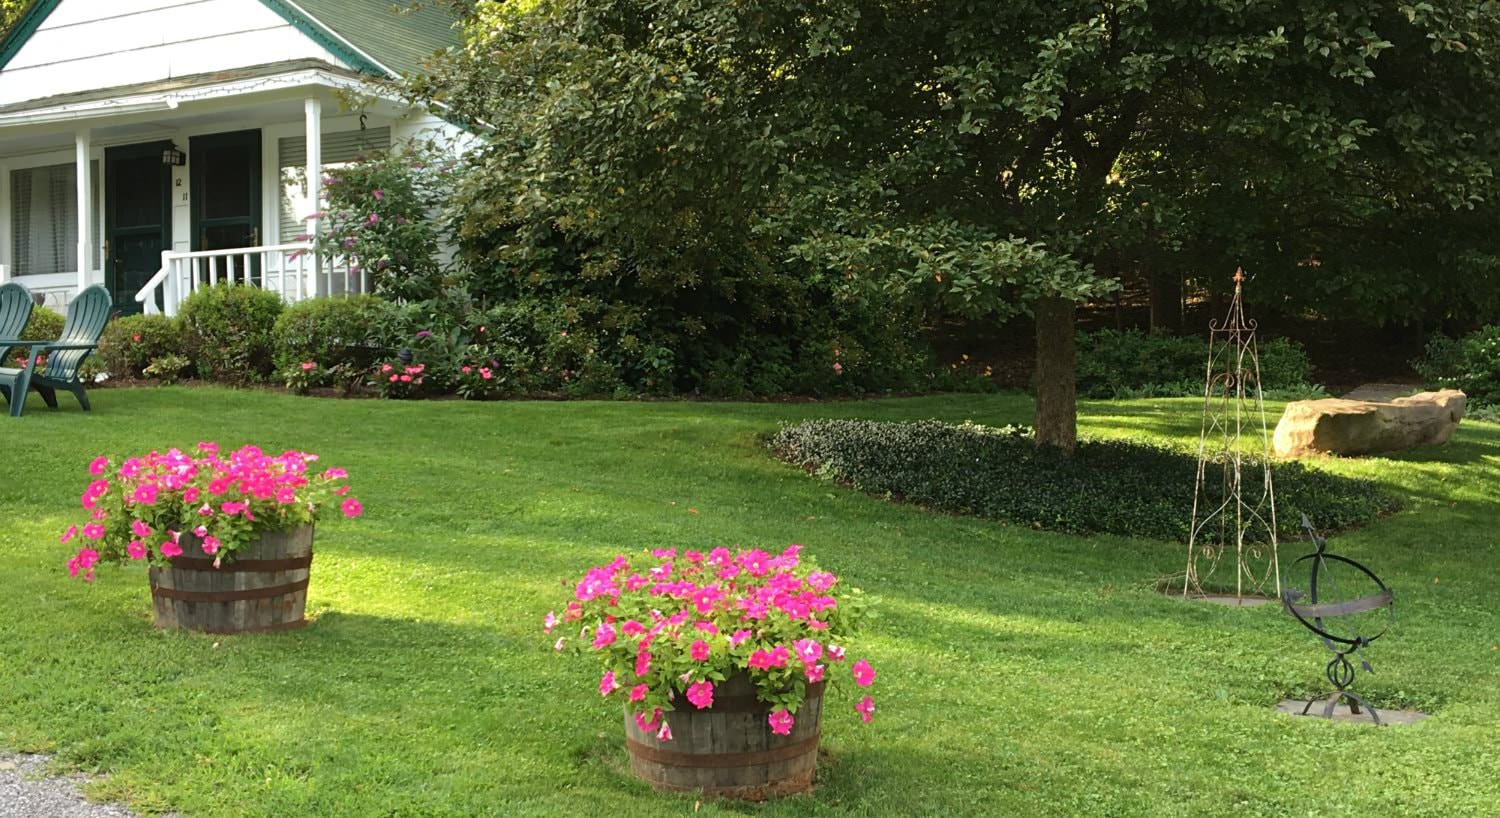 Green grassy lawn with wood buckets of pink flowers, a large greeen tree and a white cottage in the background